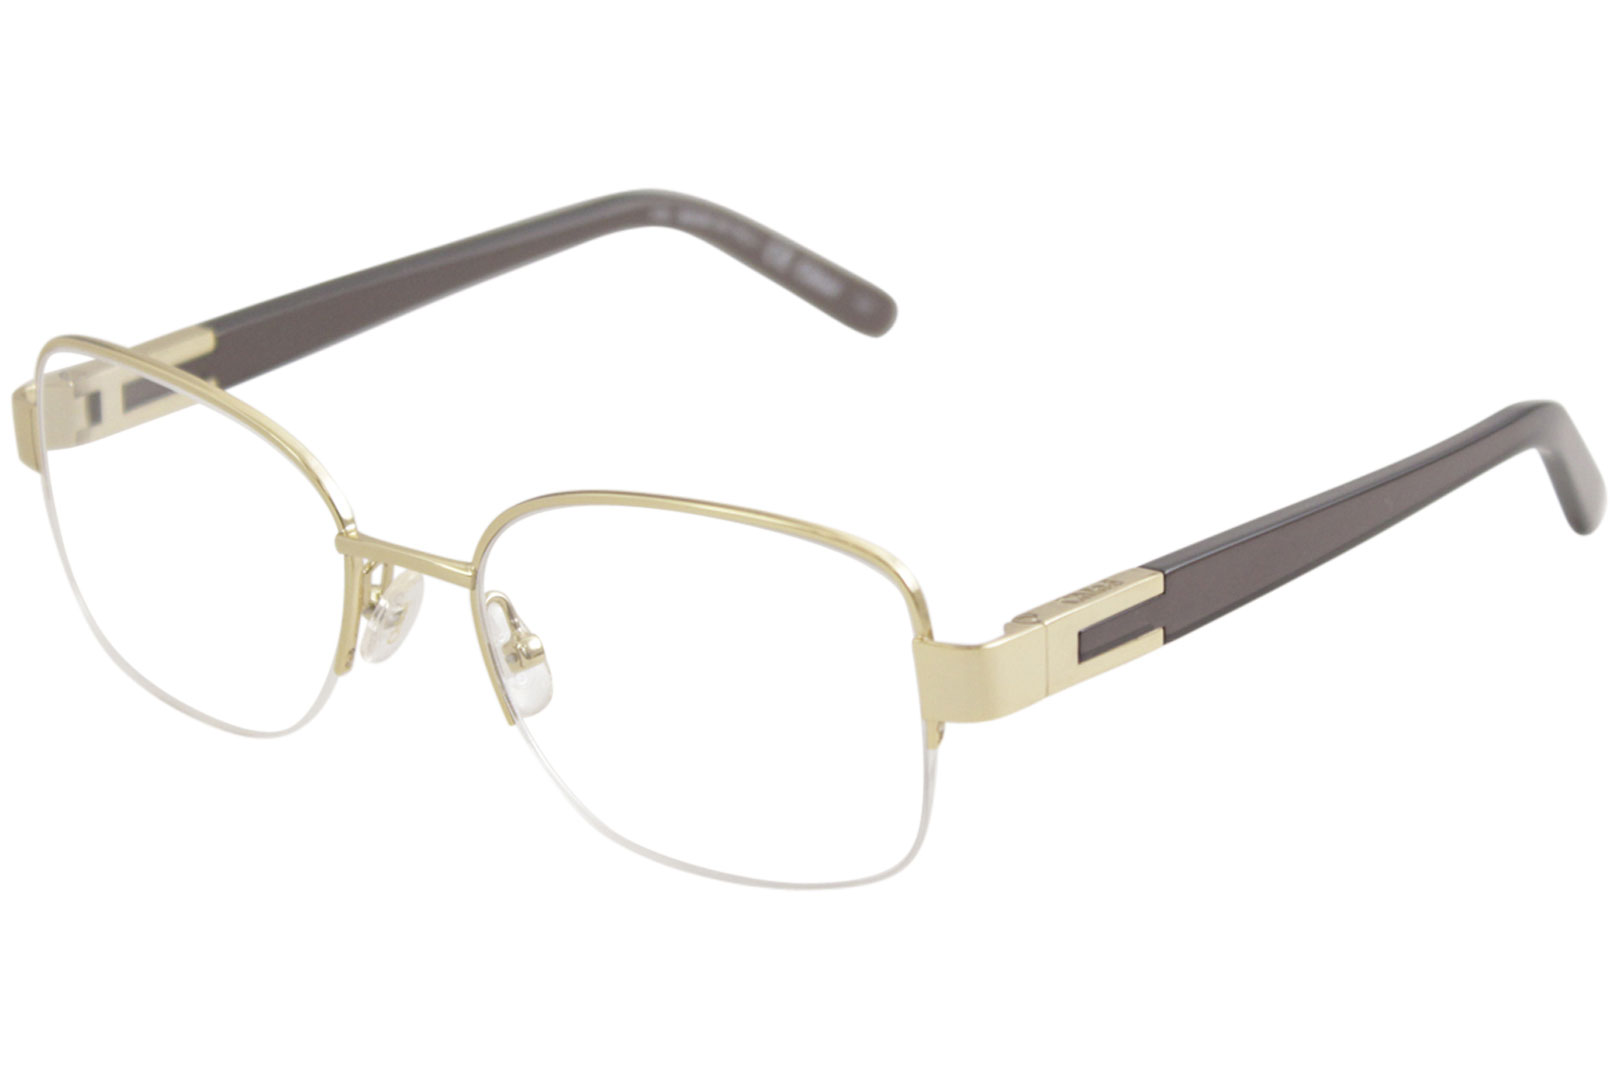 c7685e26b40 Chloe Eyeglasses CE2119 CE 2119 744 Gold Grey Half Rim Optical Frame ...